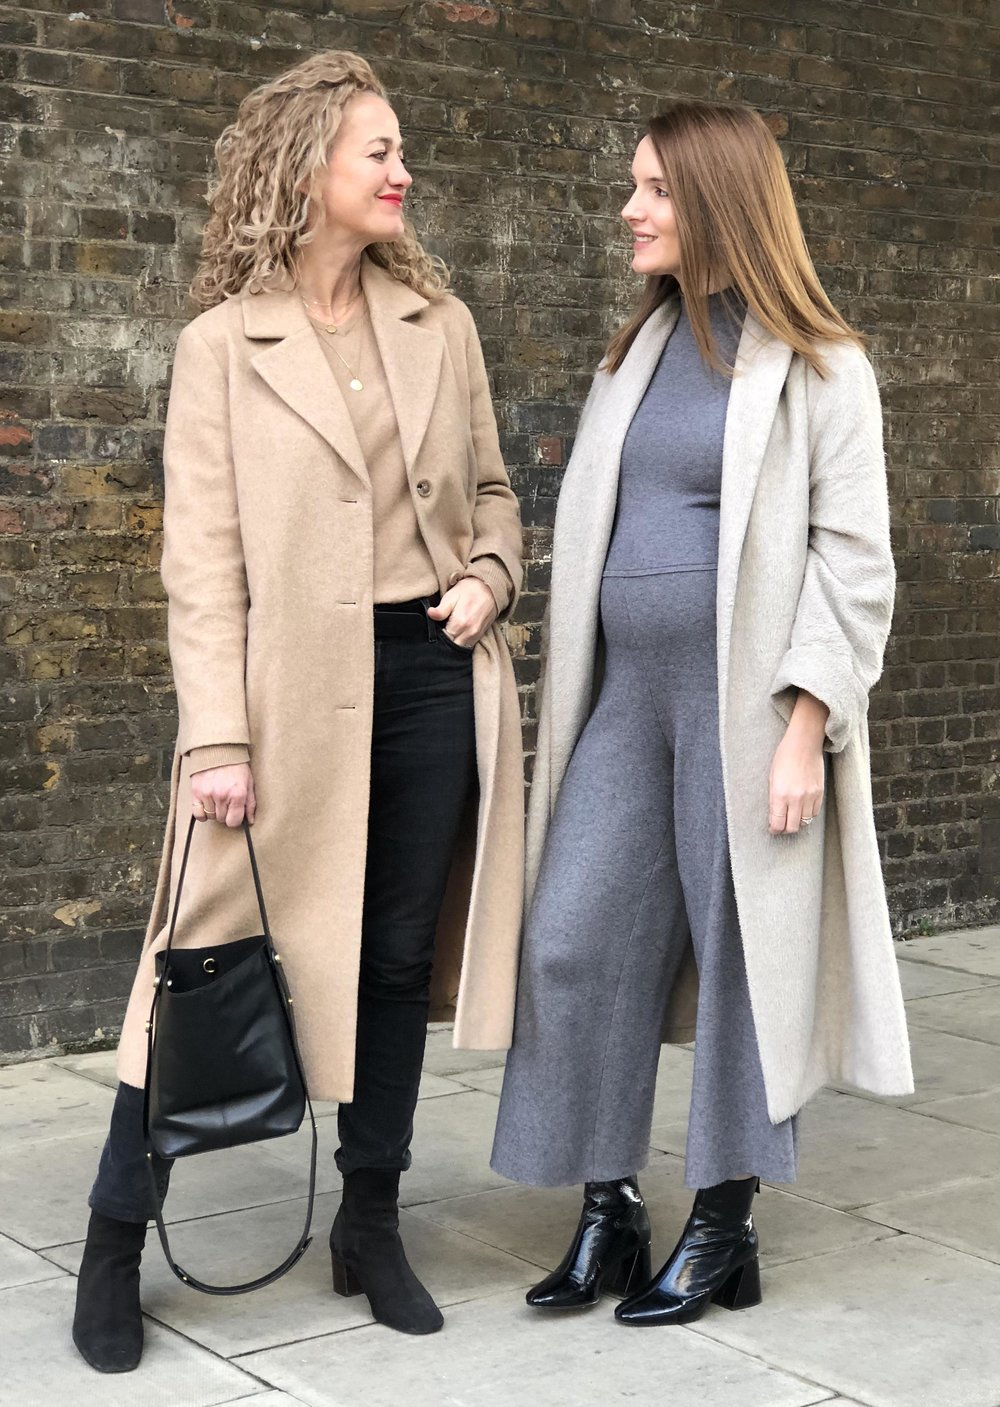 THE GROWN UP EDIT - Pregnancy